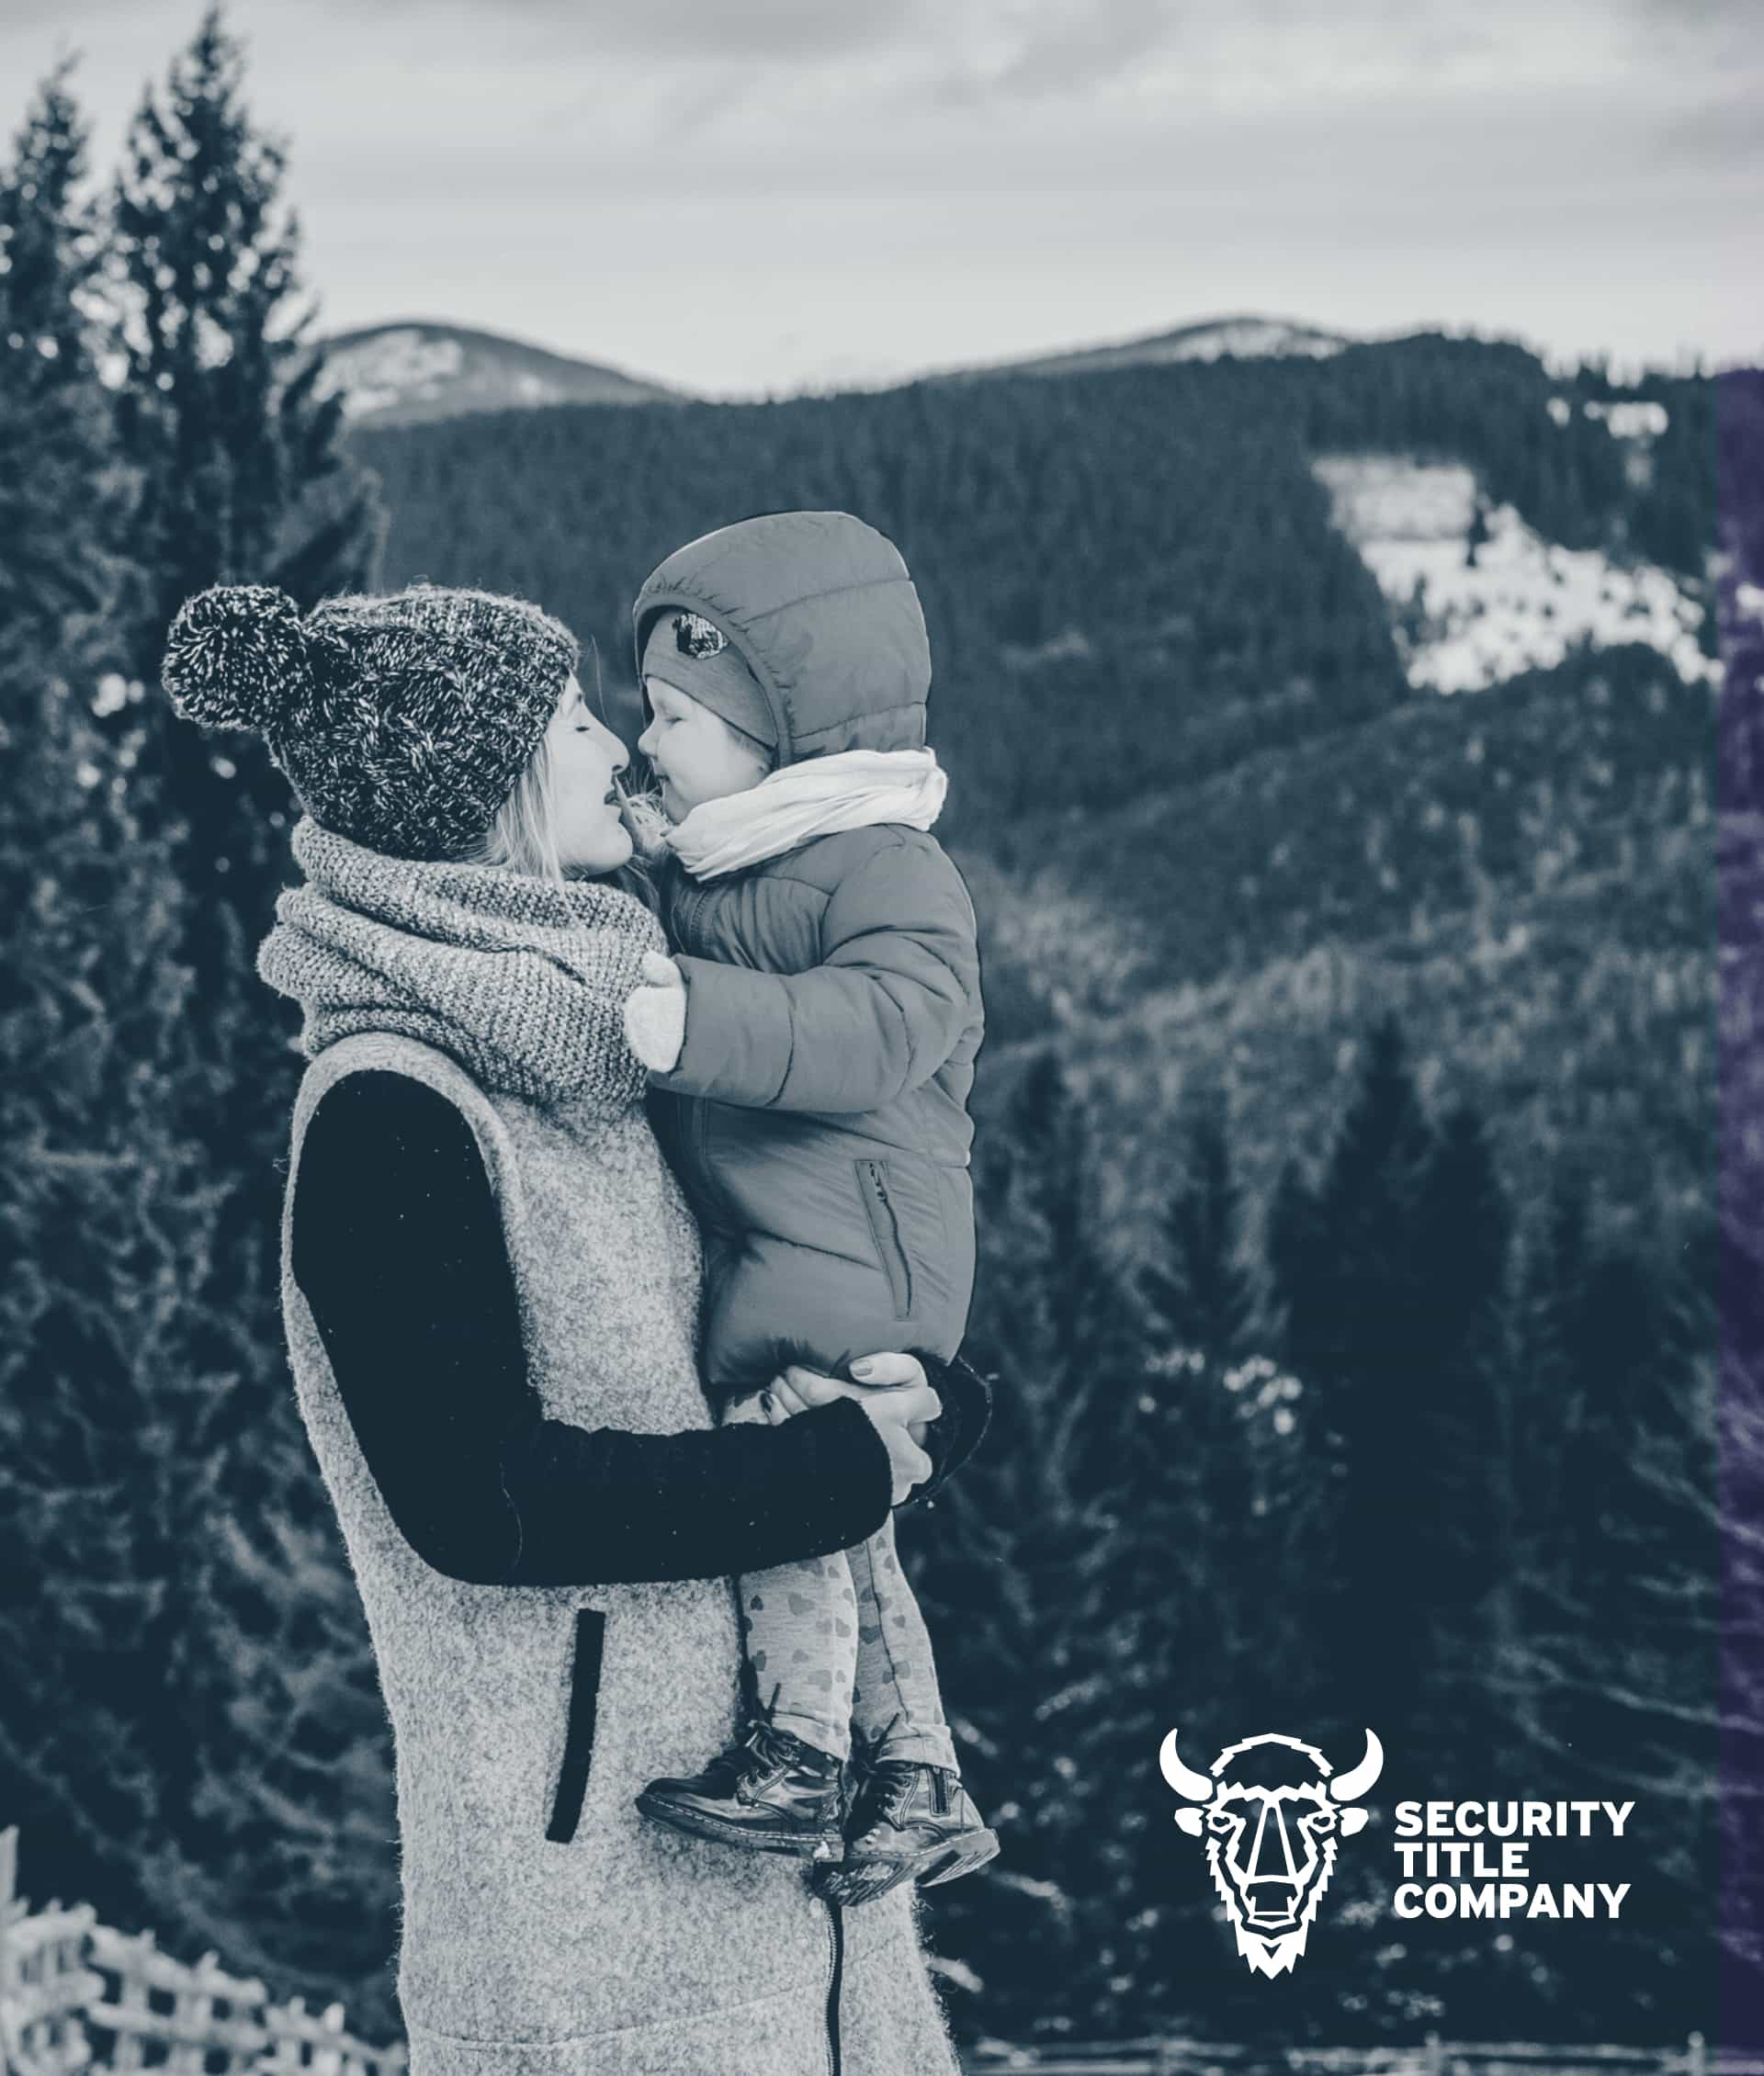 An image of a mother and child with the Security Title Co logo in the corner